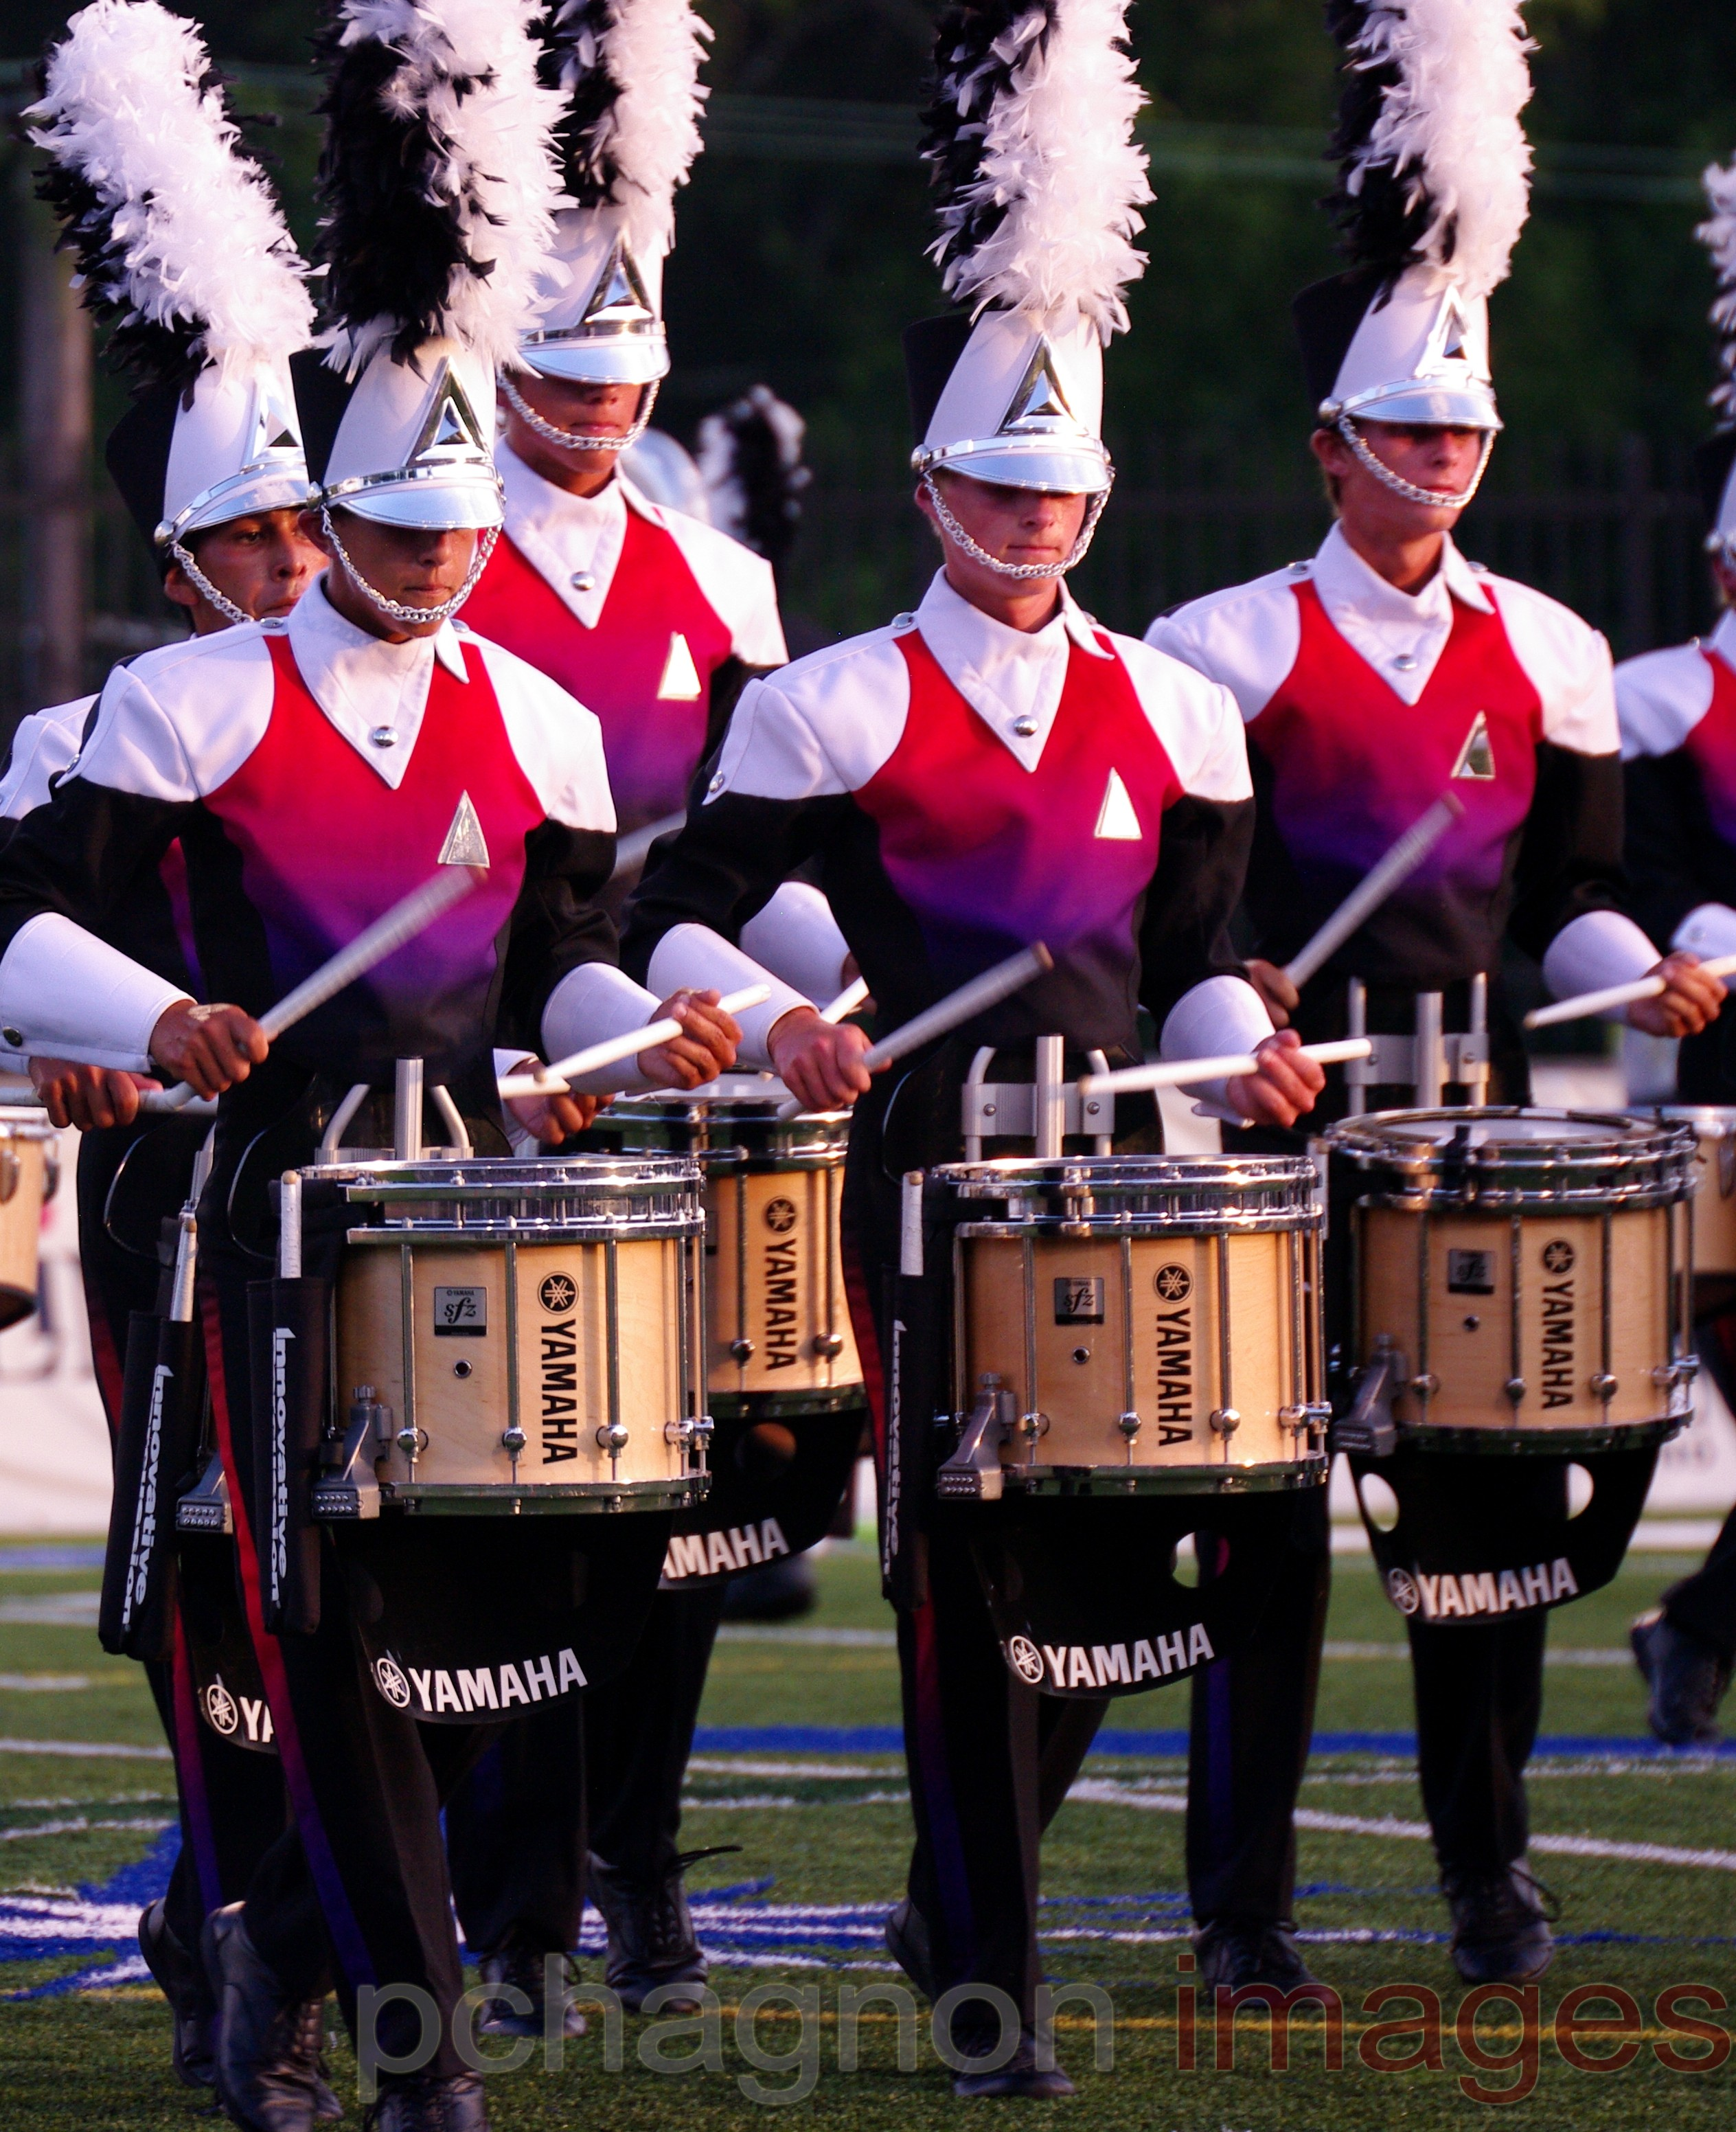 Onestop shop for all of the drum corps shows that have been announced so far for the 2018 Drum Corps International season!